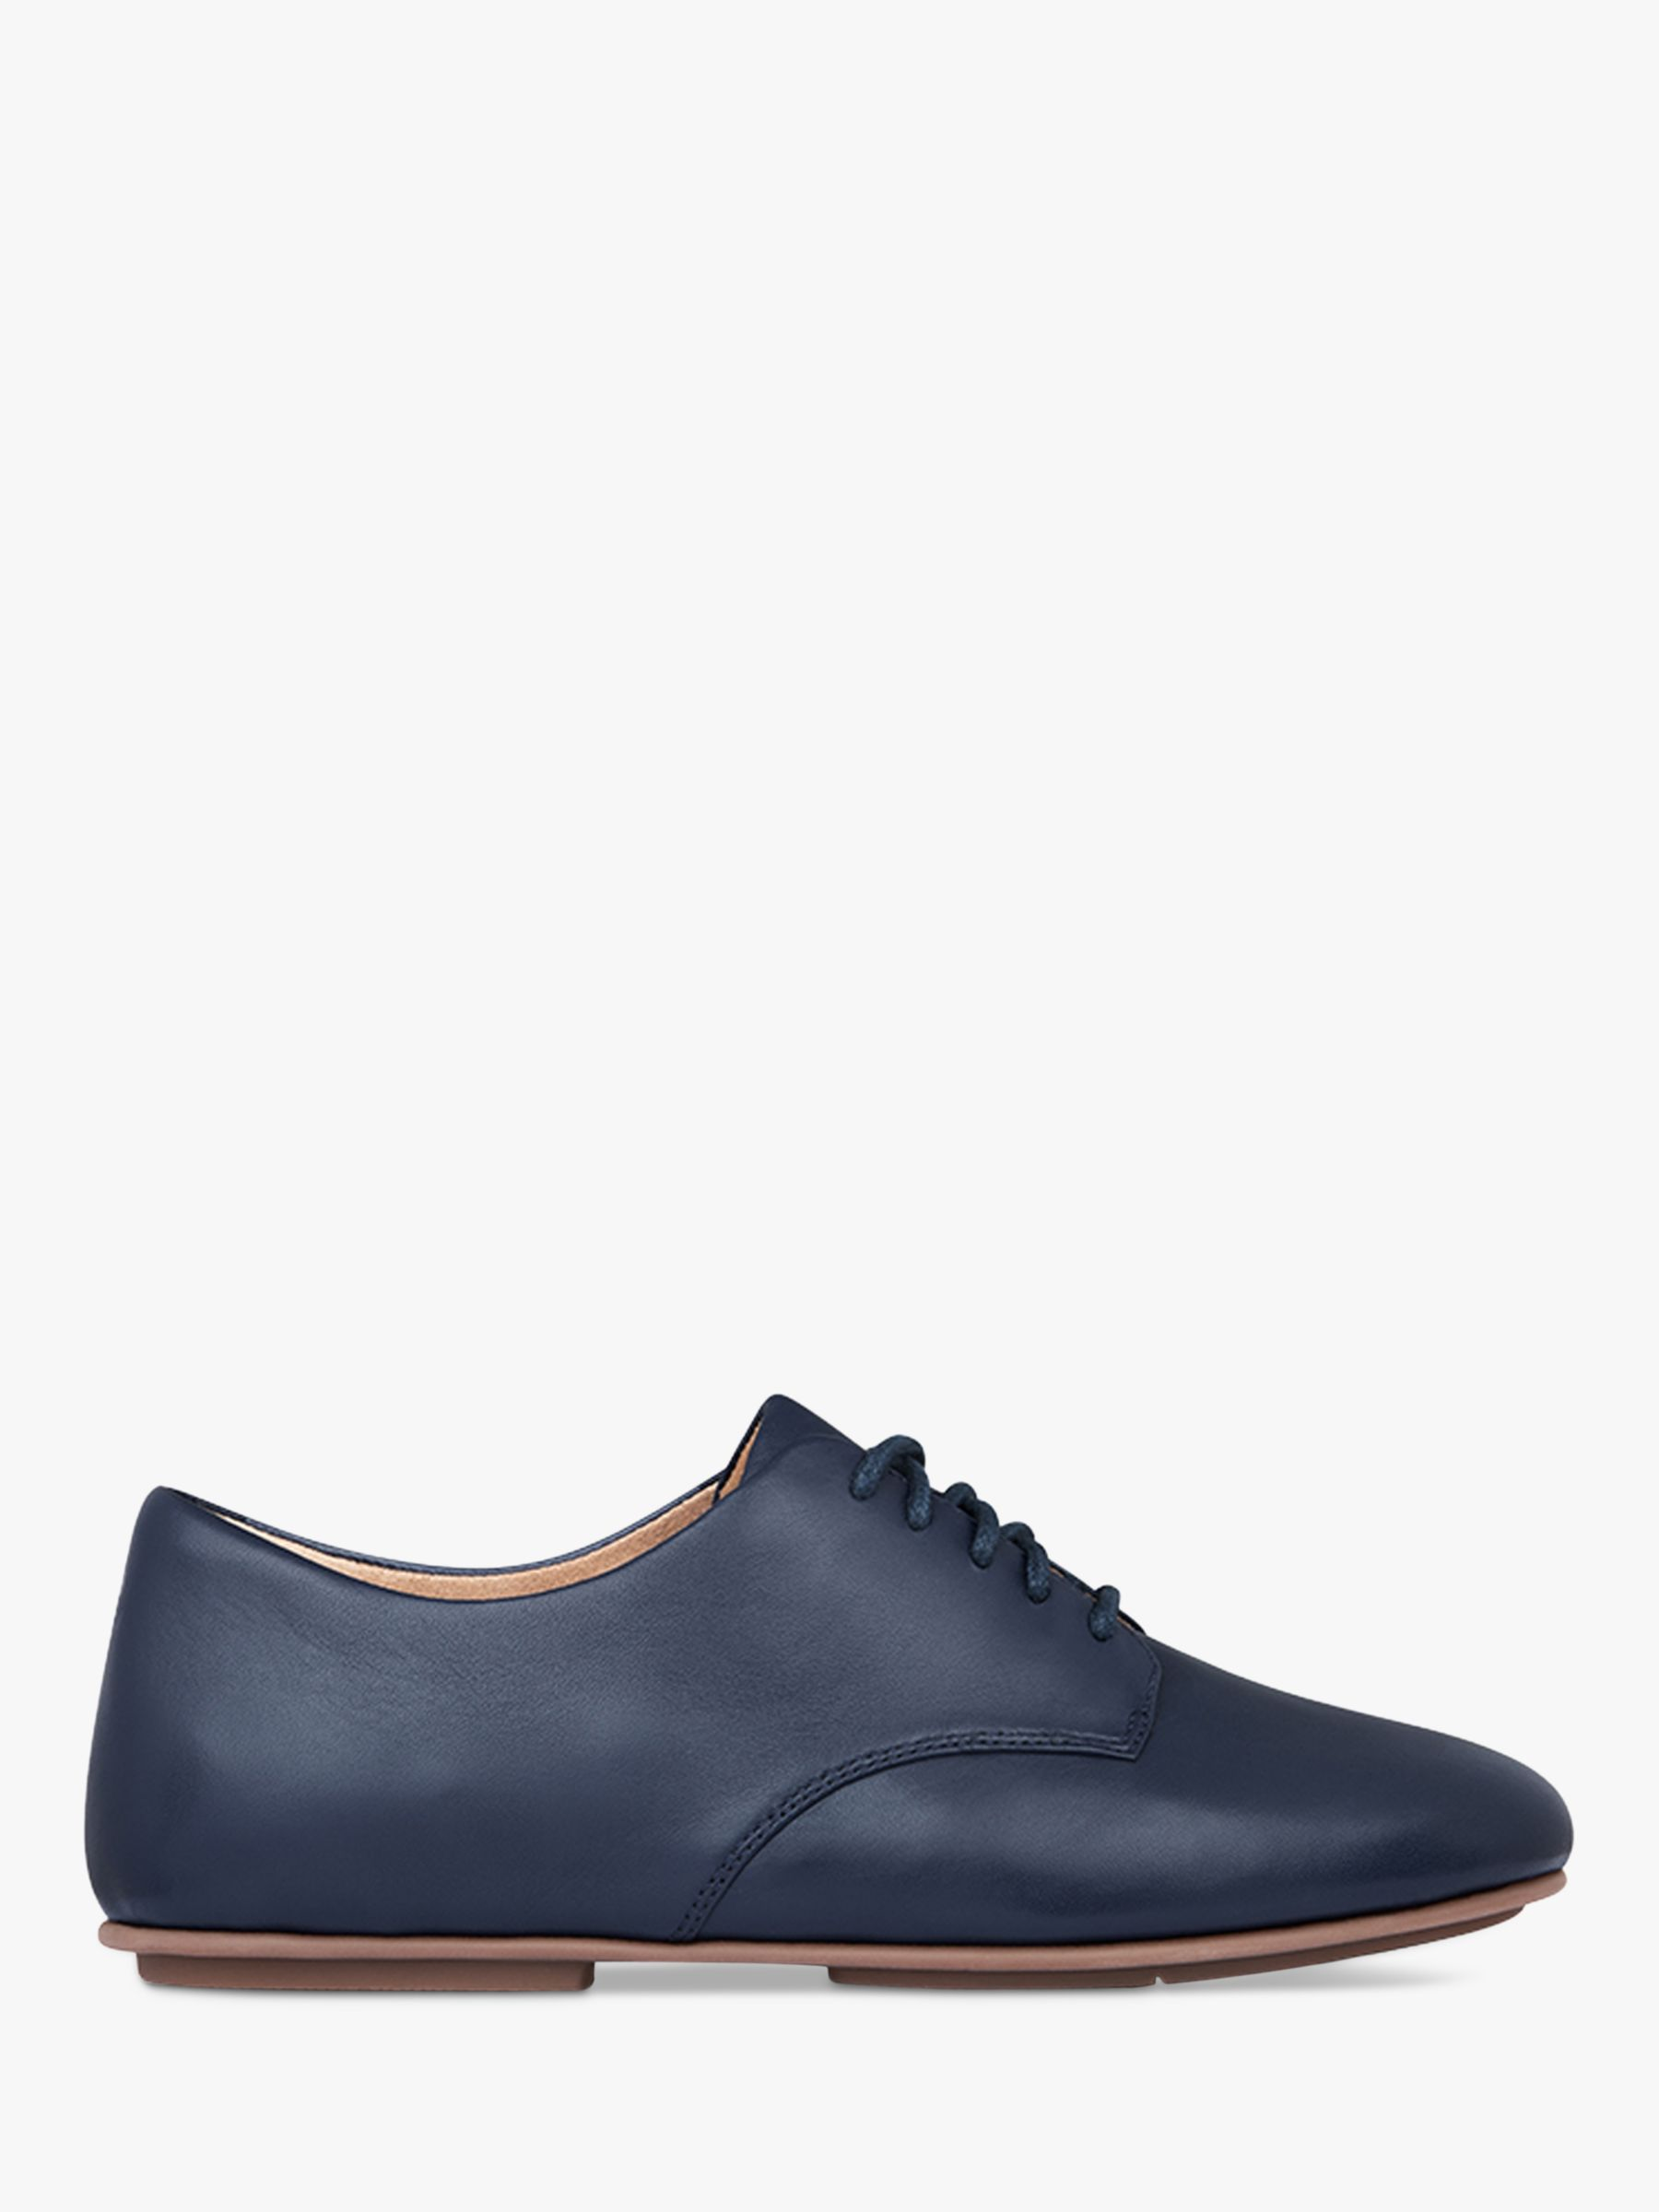 Fitflop Fitflop Adeola Derby Leather Lace Up Shoes